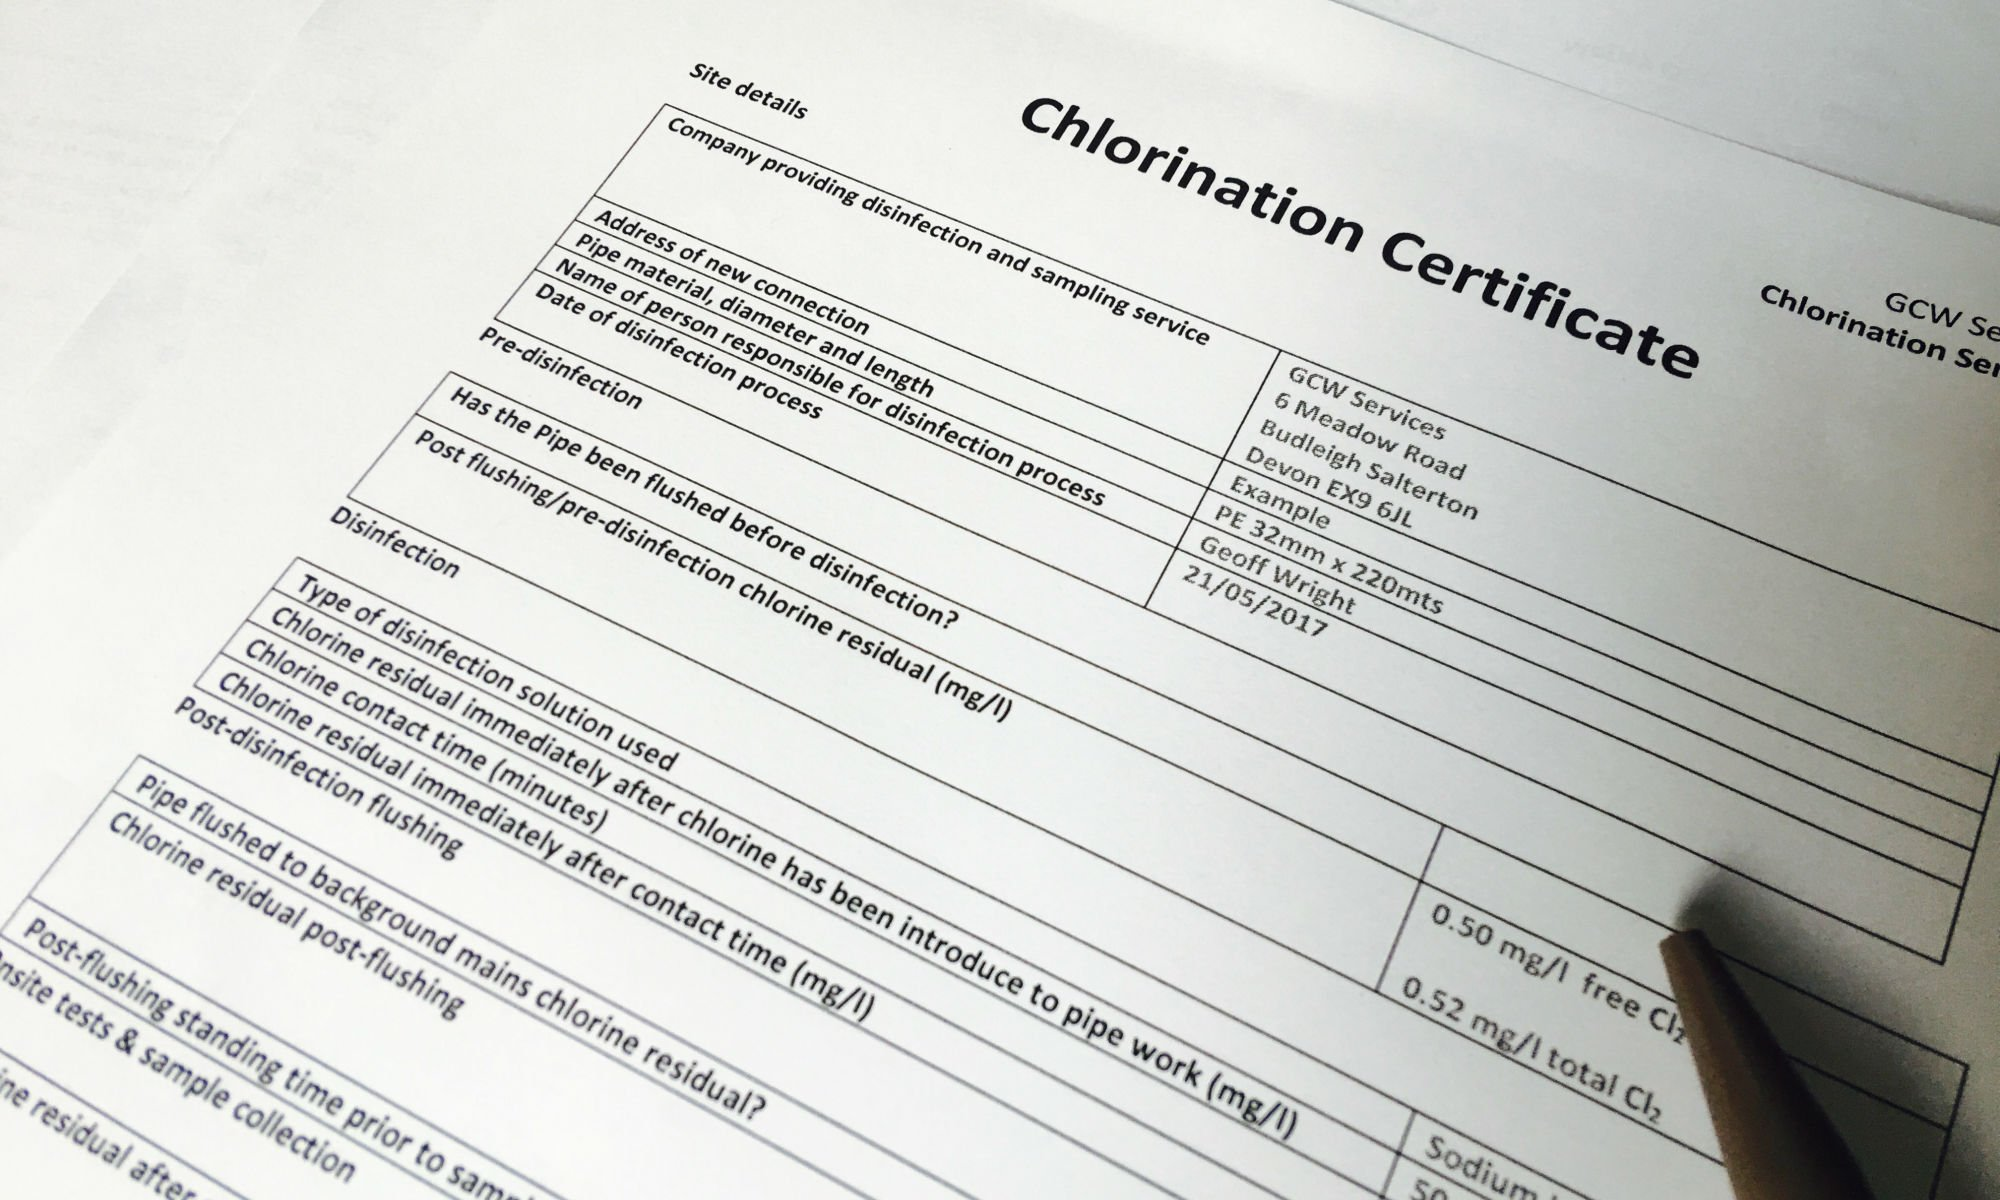 Chlorination Certificate Example provided by GCW Services